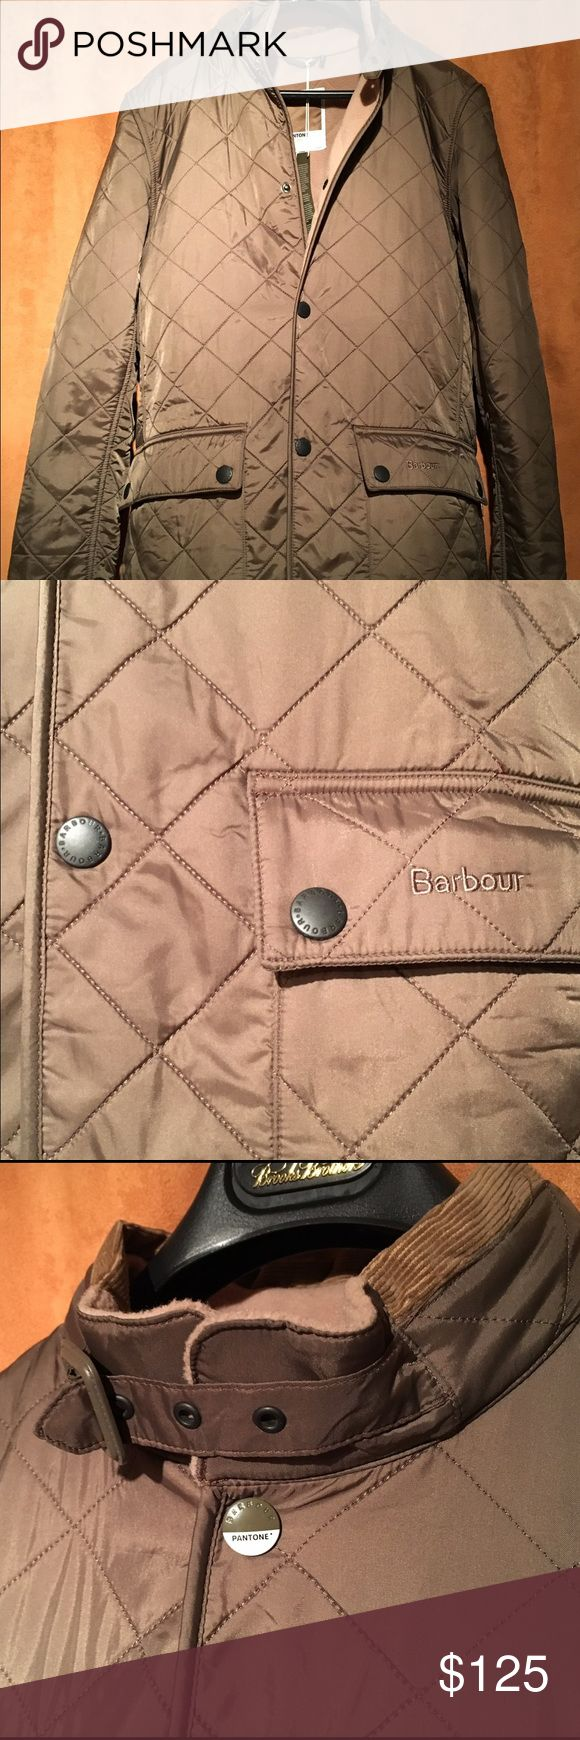 NWT Barbour X PANTONE Polartone Quilted Jacket Brand New Limited Edition Barbour X PANTONE Polartone Quilted Jacket. Equipped with a full fleece lining, this lightweight yet effective quilt has a cord trimmed collar with a traditional buckle secured storm flap, two flap closed pockets and is finished with a detail top stud inspired by the Pantone logo. 100% Nylon Shell Fleece Lining Tonal Corduroy Collar and Trim Two Flap Covered Pockets Cross-Branded Top Stud Barbour Jackets & Coats